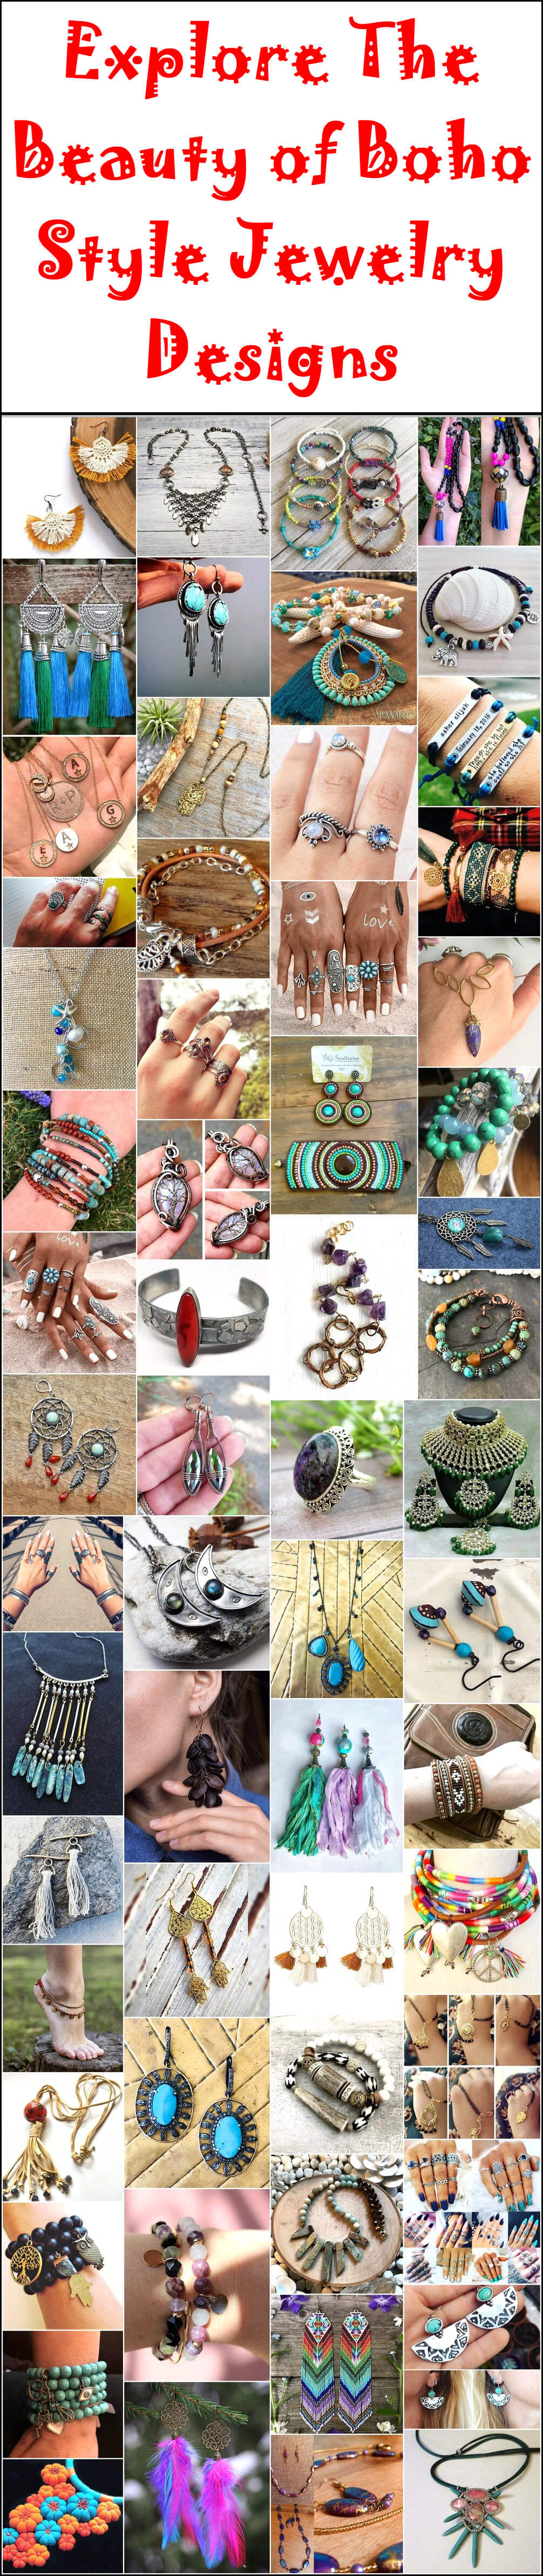 Explore The Beauty of Boho Style Jewelry Designs